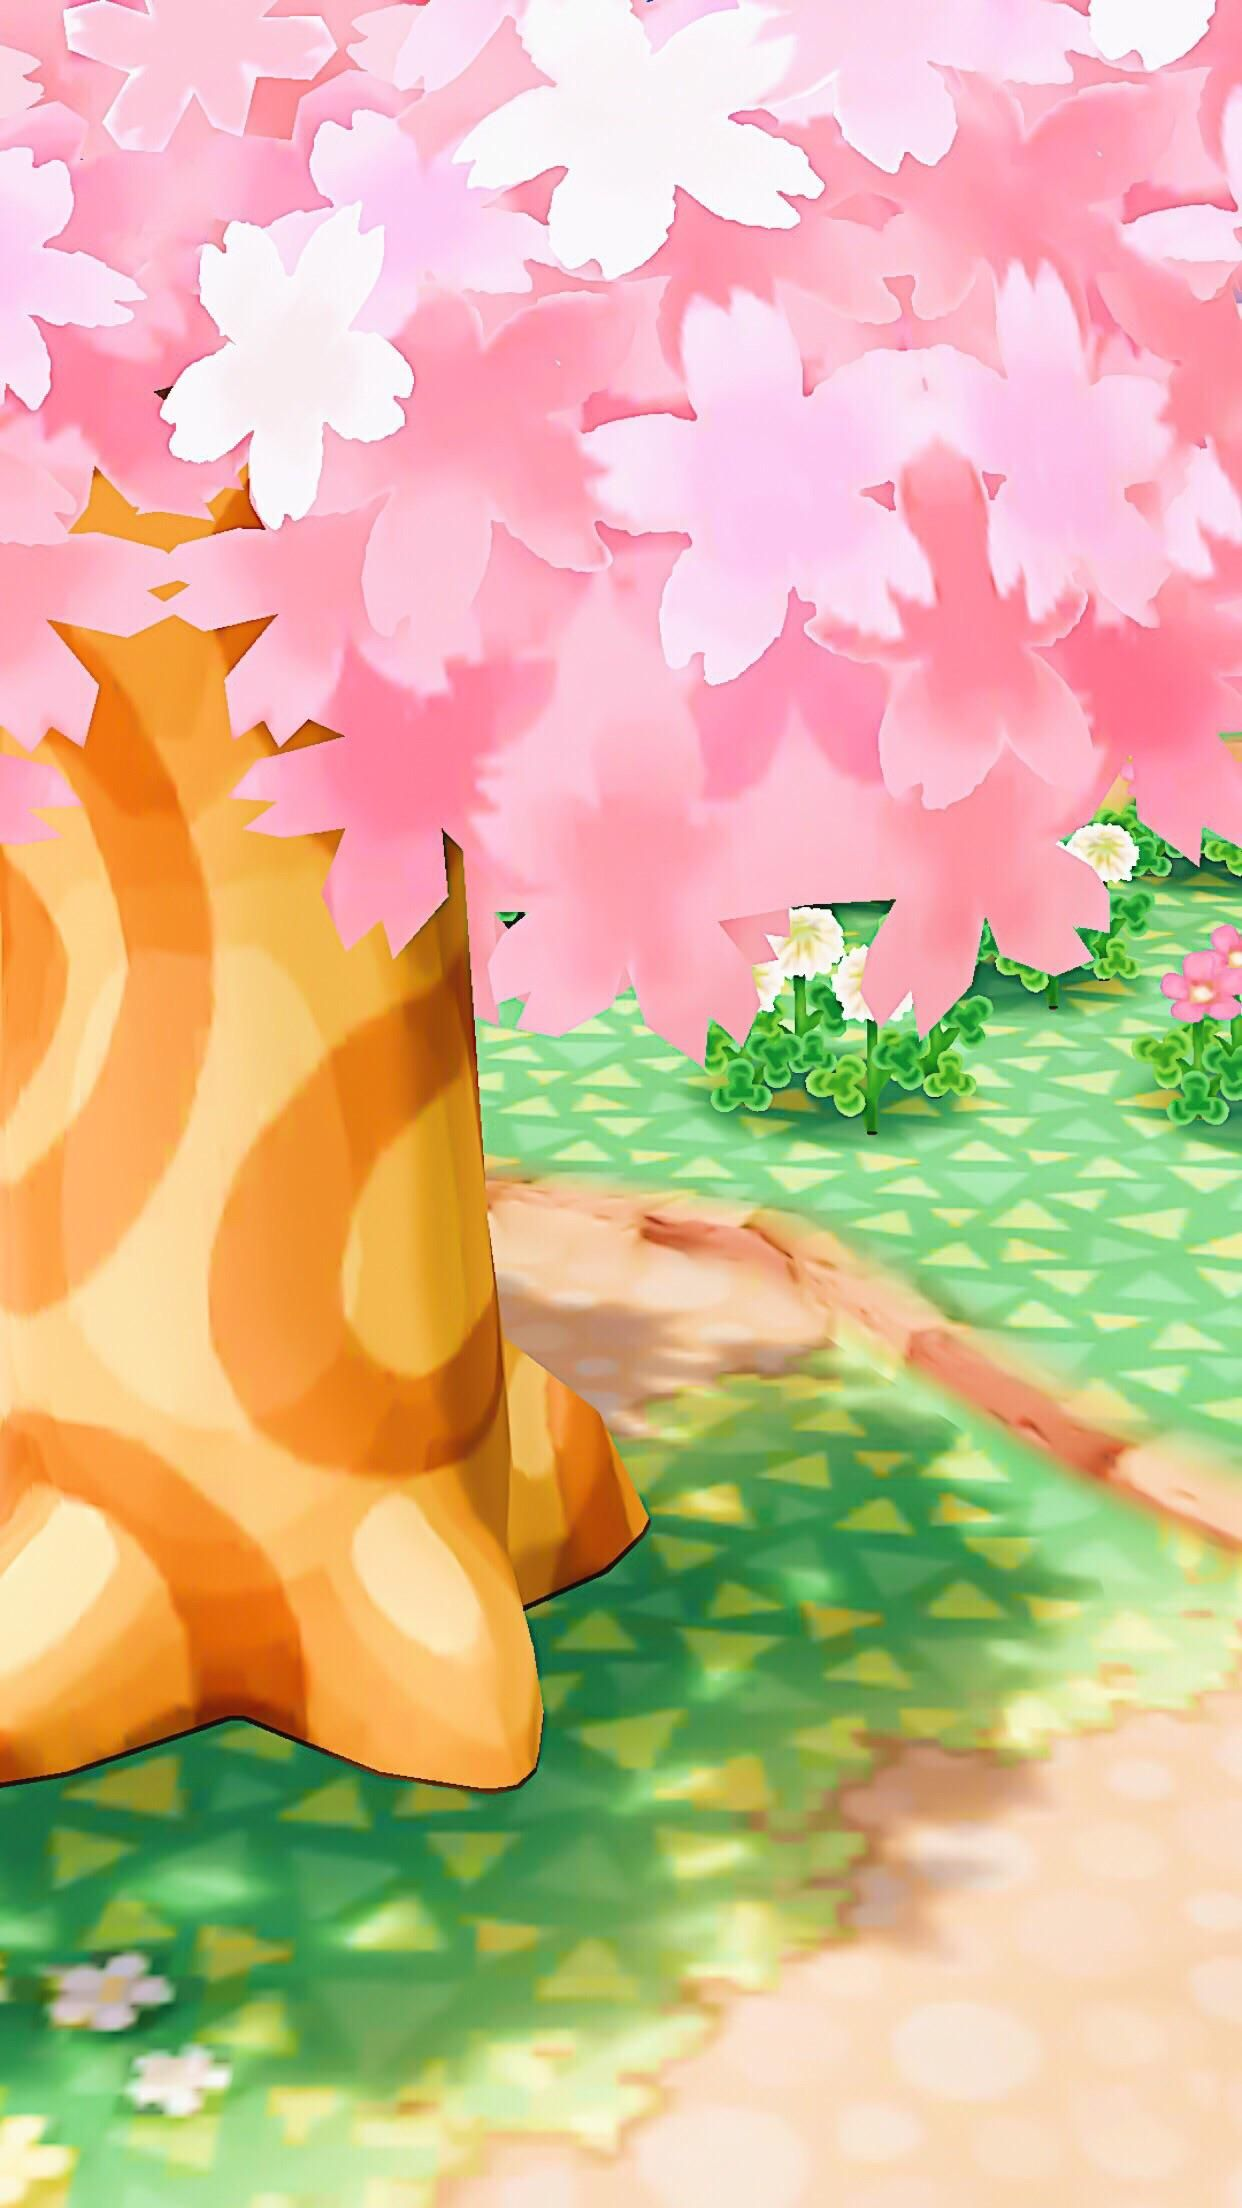 Wallpapers image by 𝘫 𝘰 𝘦 𝘭 𝘪 𝘴 𝘦 Animal crossing